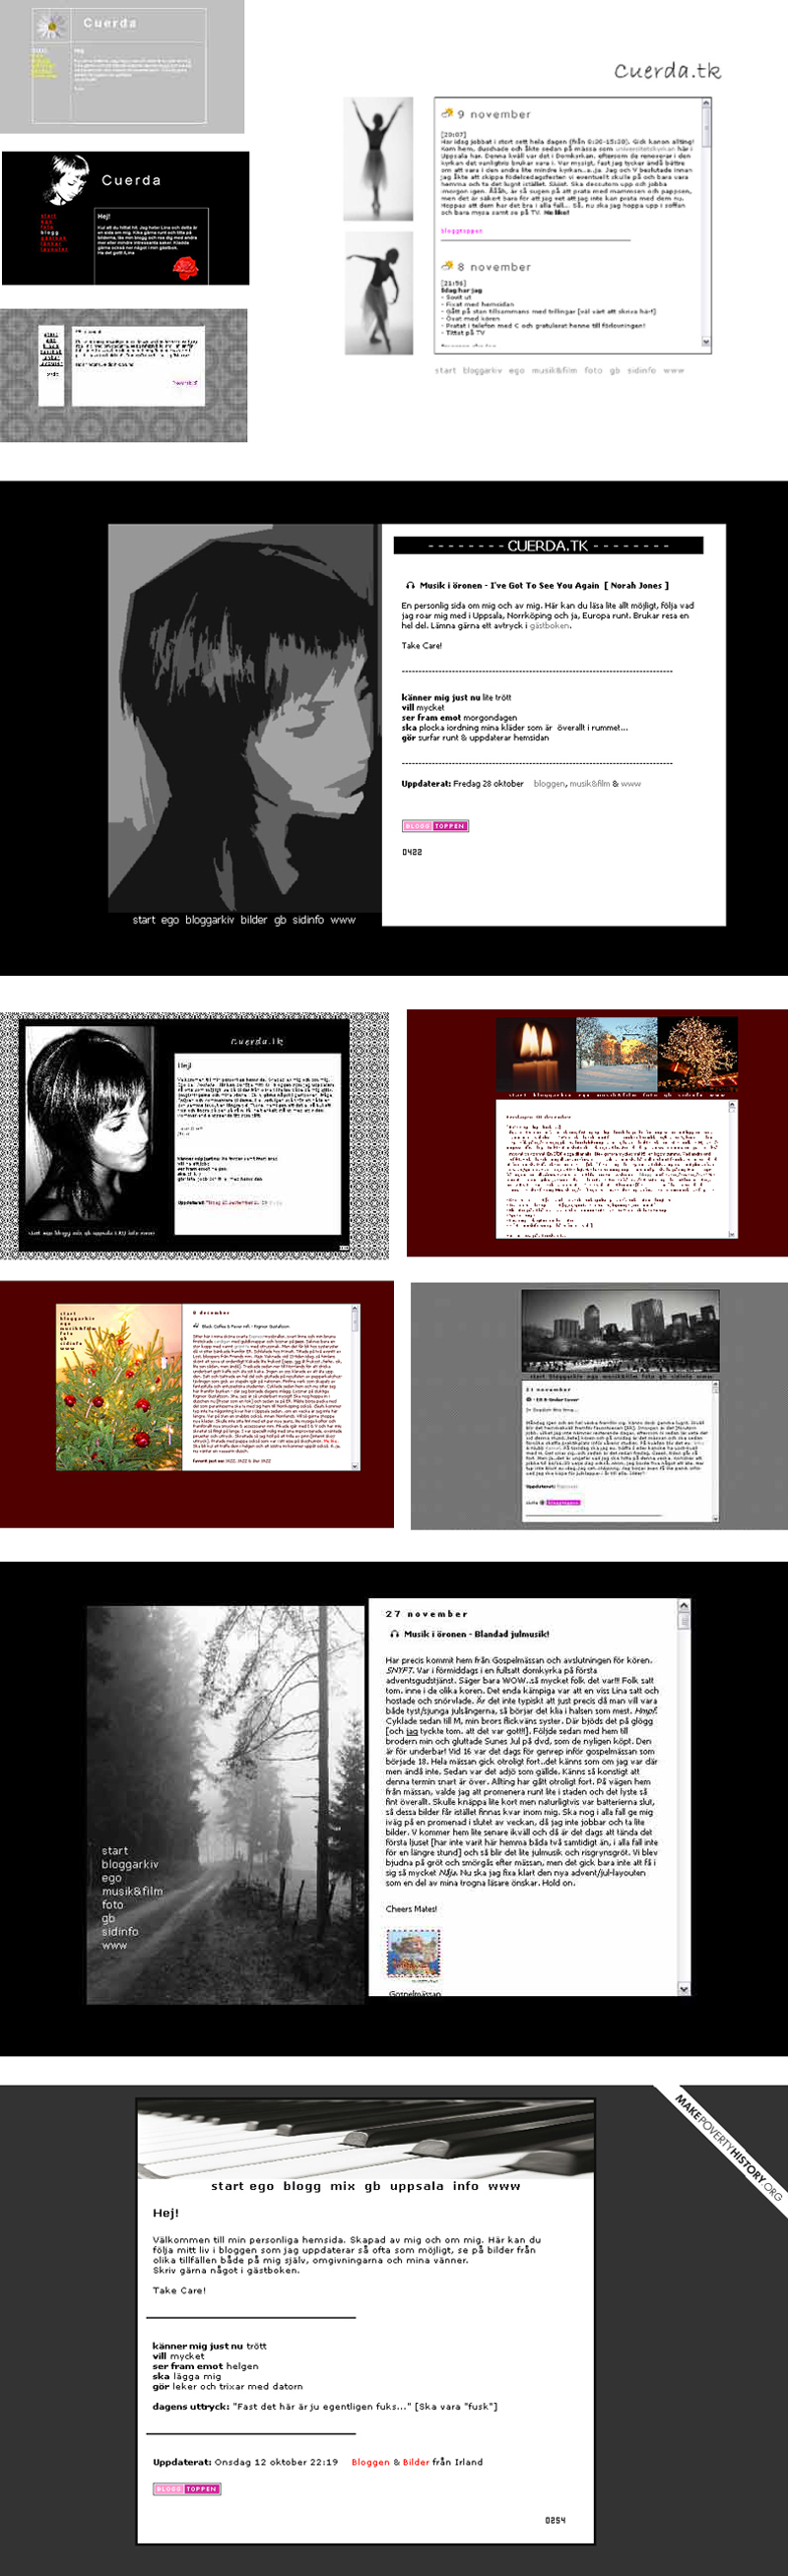 blogdesign04-05